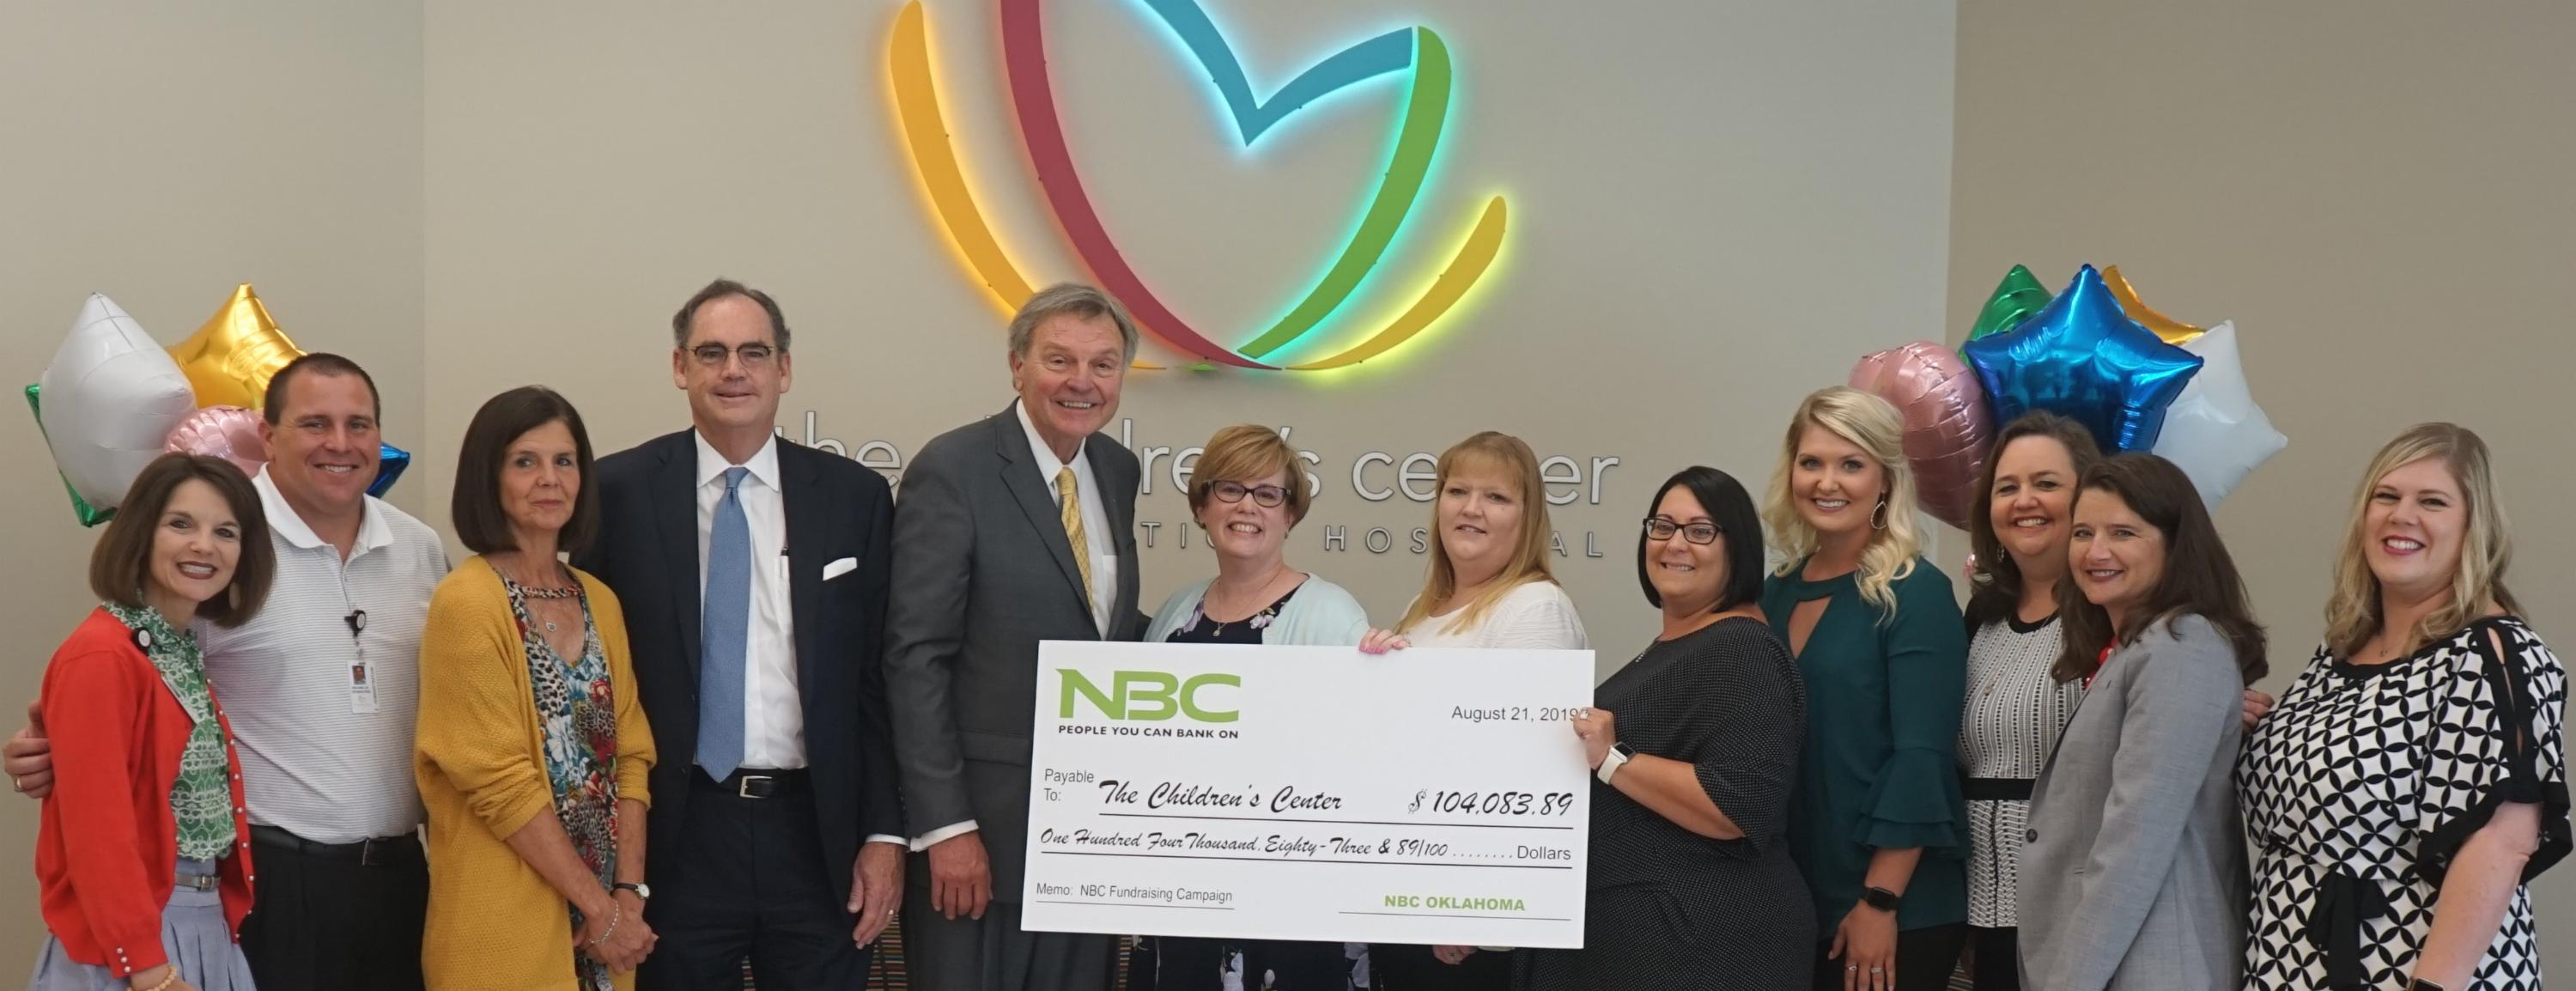 NBC Oklahoma Completes Fundraising Campaign for Hospital